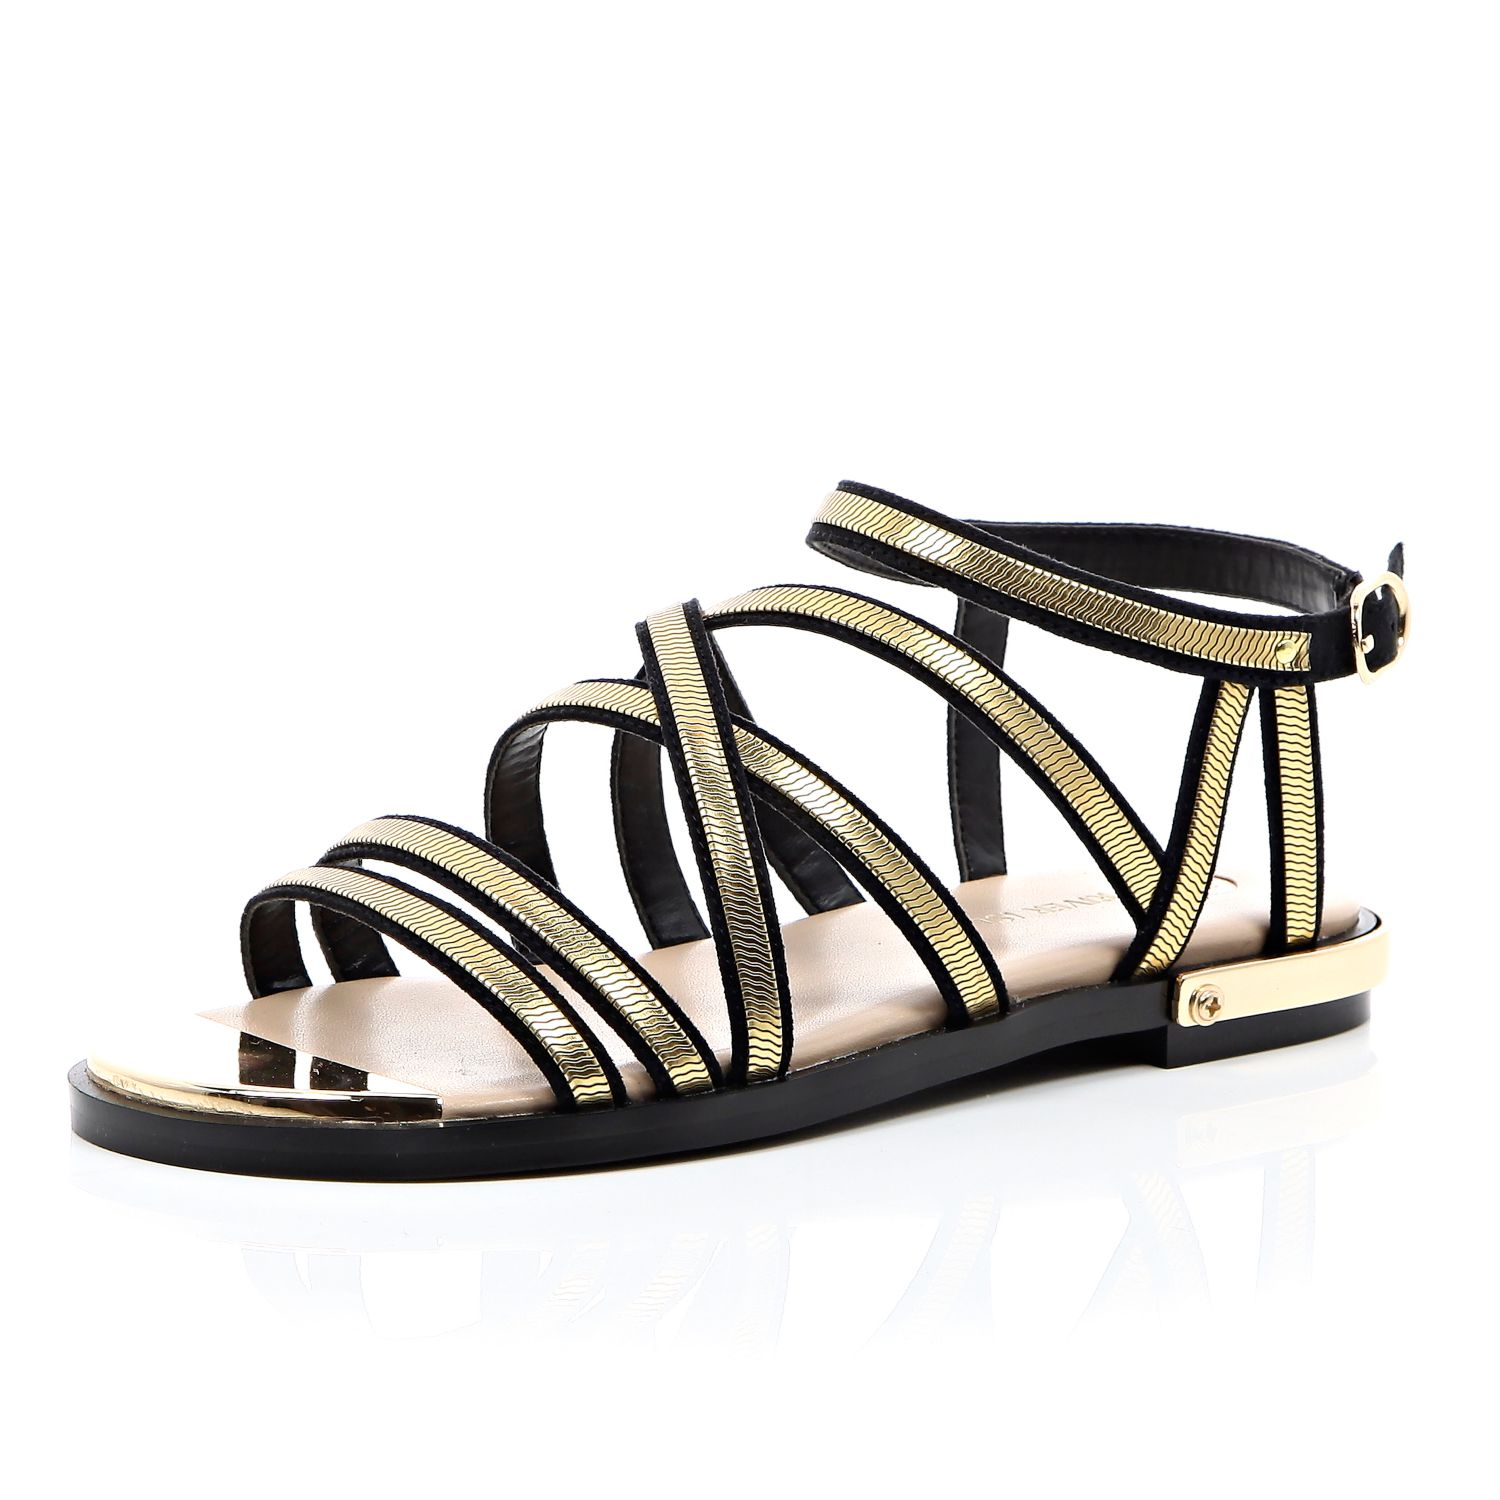 d163a6bc9913 River Island Black And Gold Strappy Gladiator Sandals in Metallic - Lyst